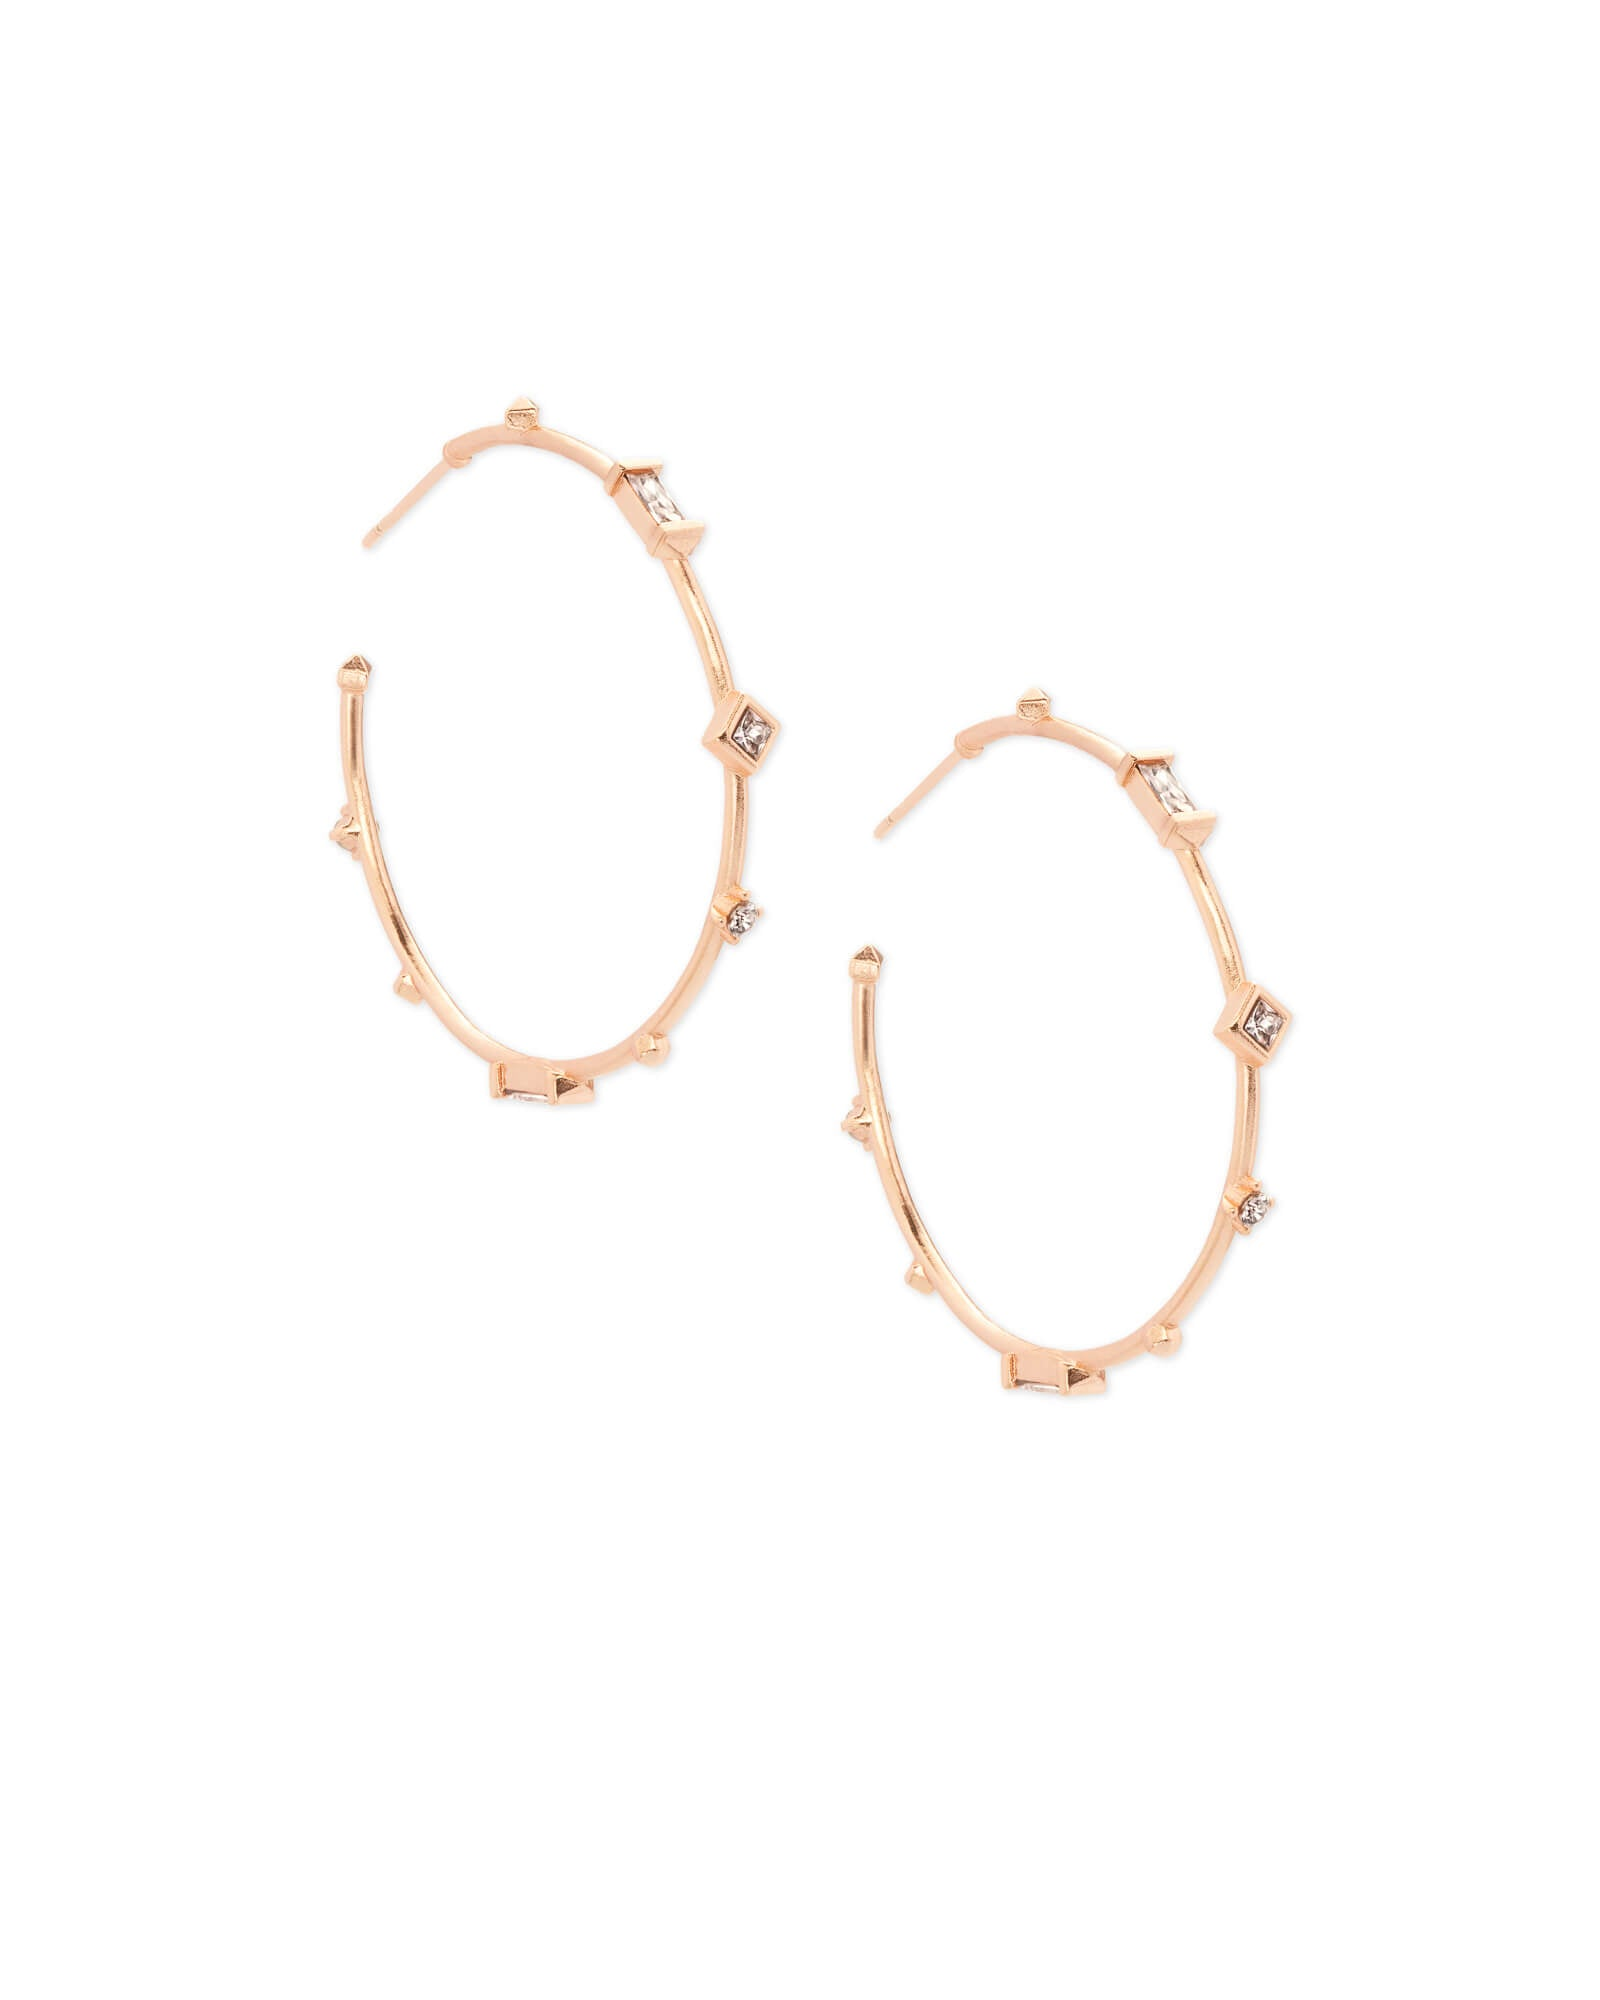 Rhoan Rose Gold Hoop Earrings in Blush Mix